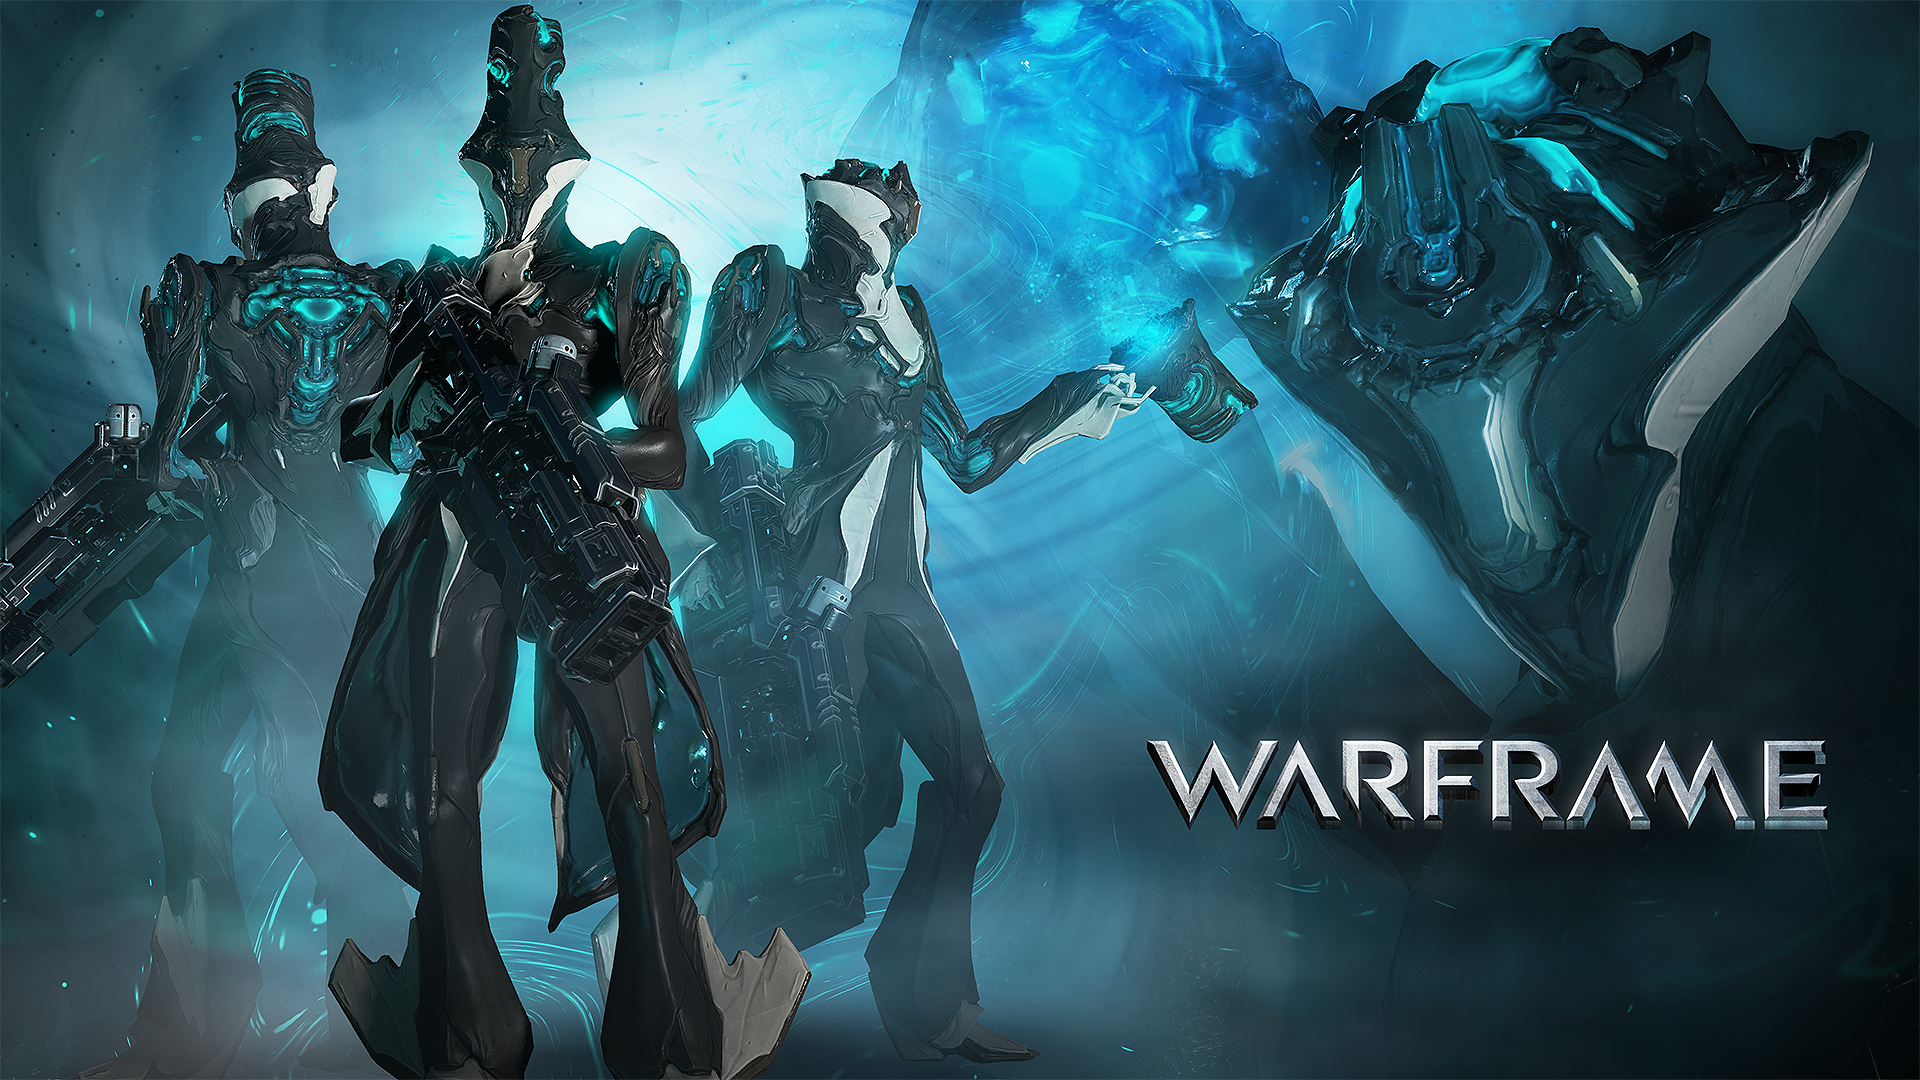 IMAGE(https://vignette2.wikia.nocookie.net/warframe/images/6/68/Limbo_Rock.jpg/revision/latest?cb=20151013194218)